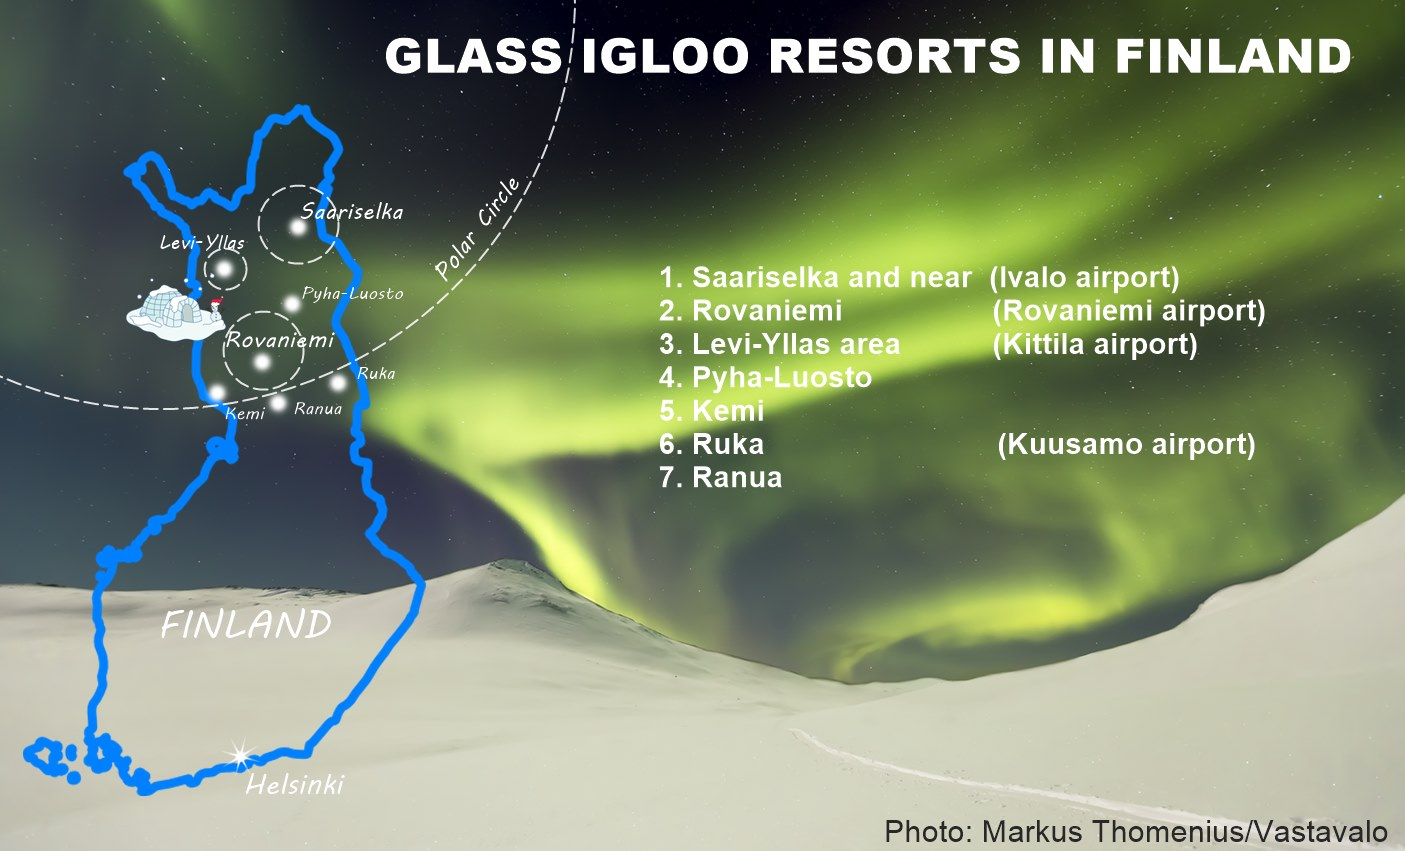 Where Glass Igloos located in Finland